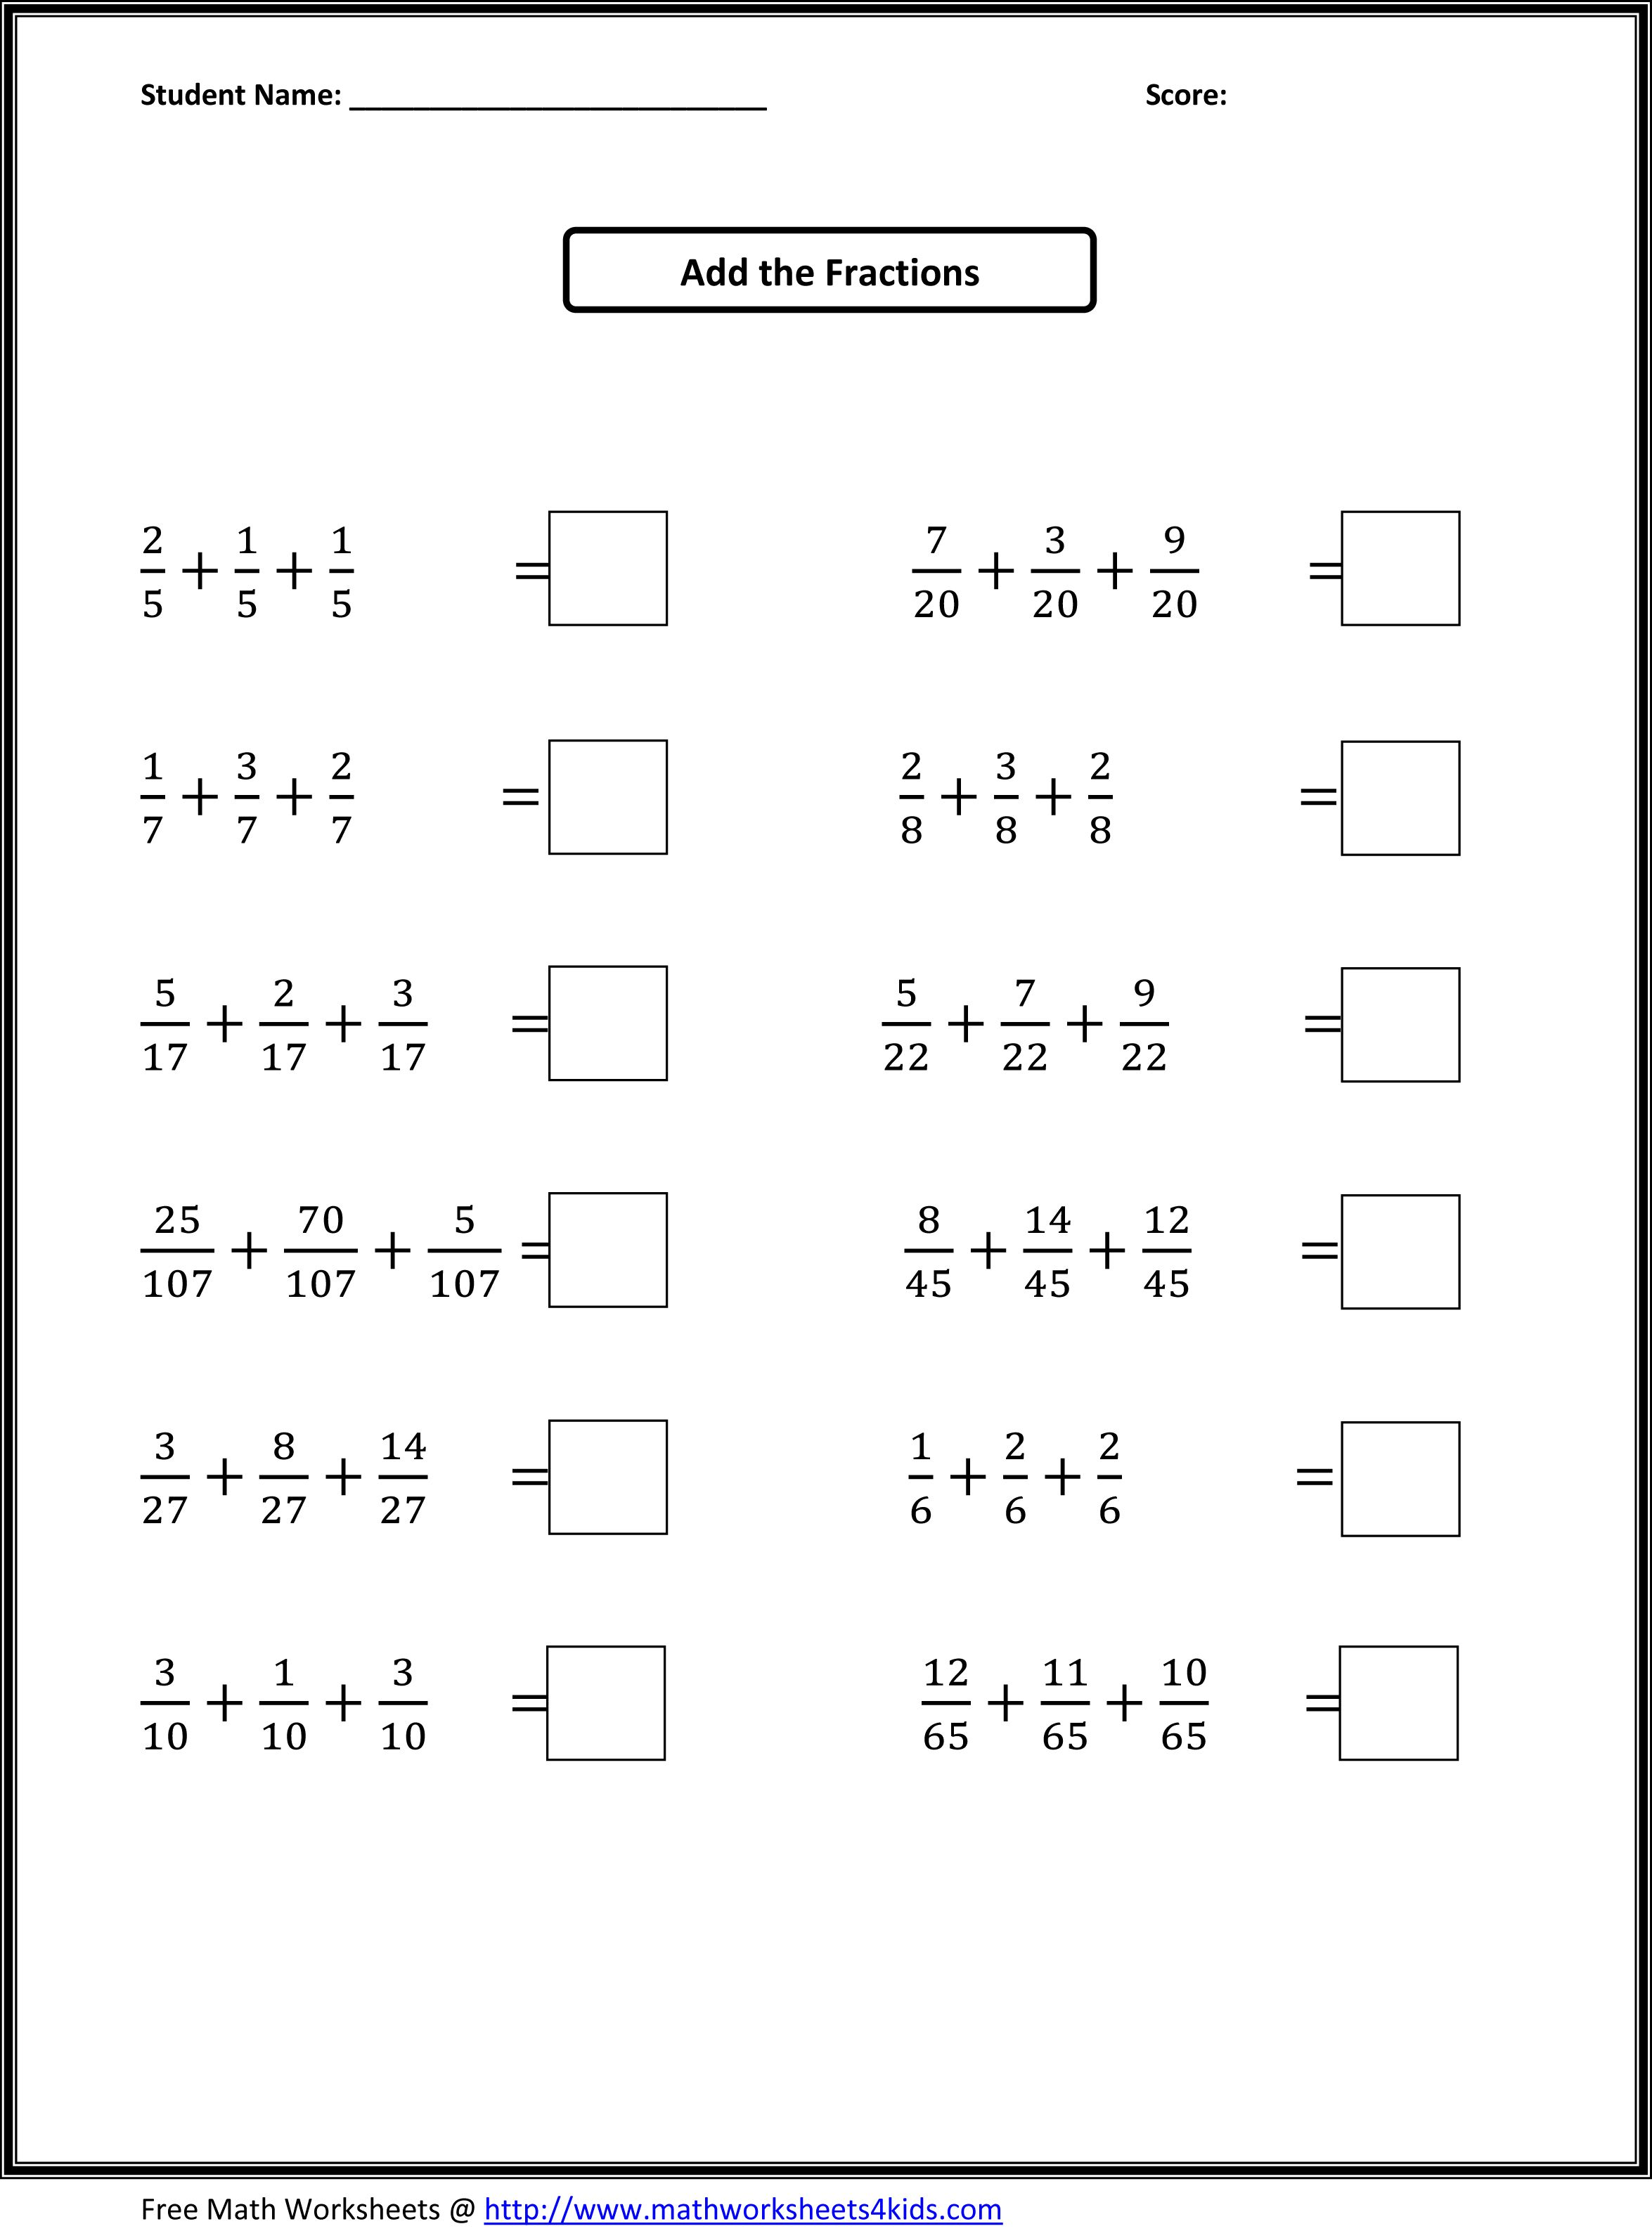 Worksheets for all early ed grades All topics of math – Worksheets on Adding Fractions